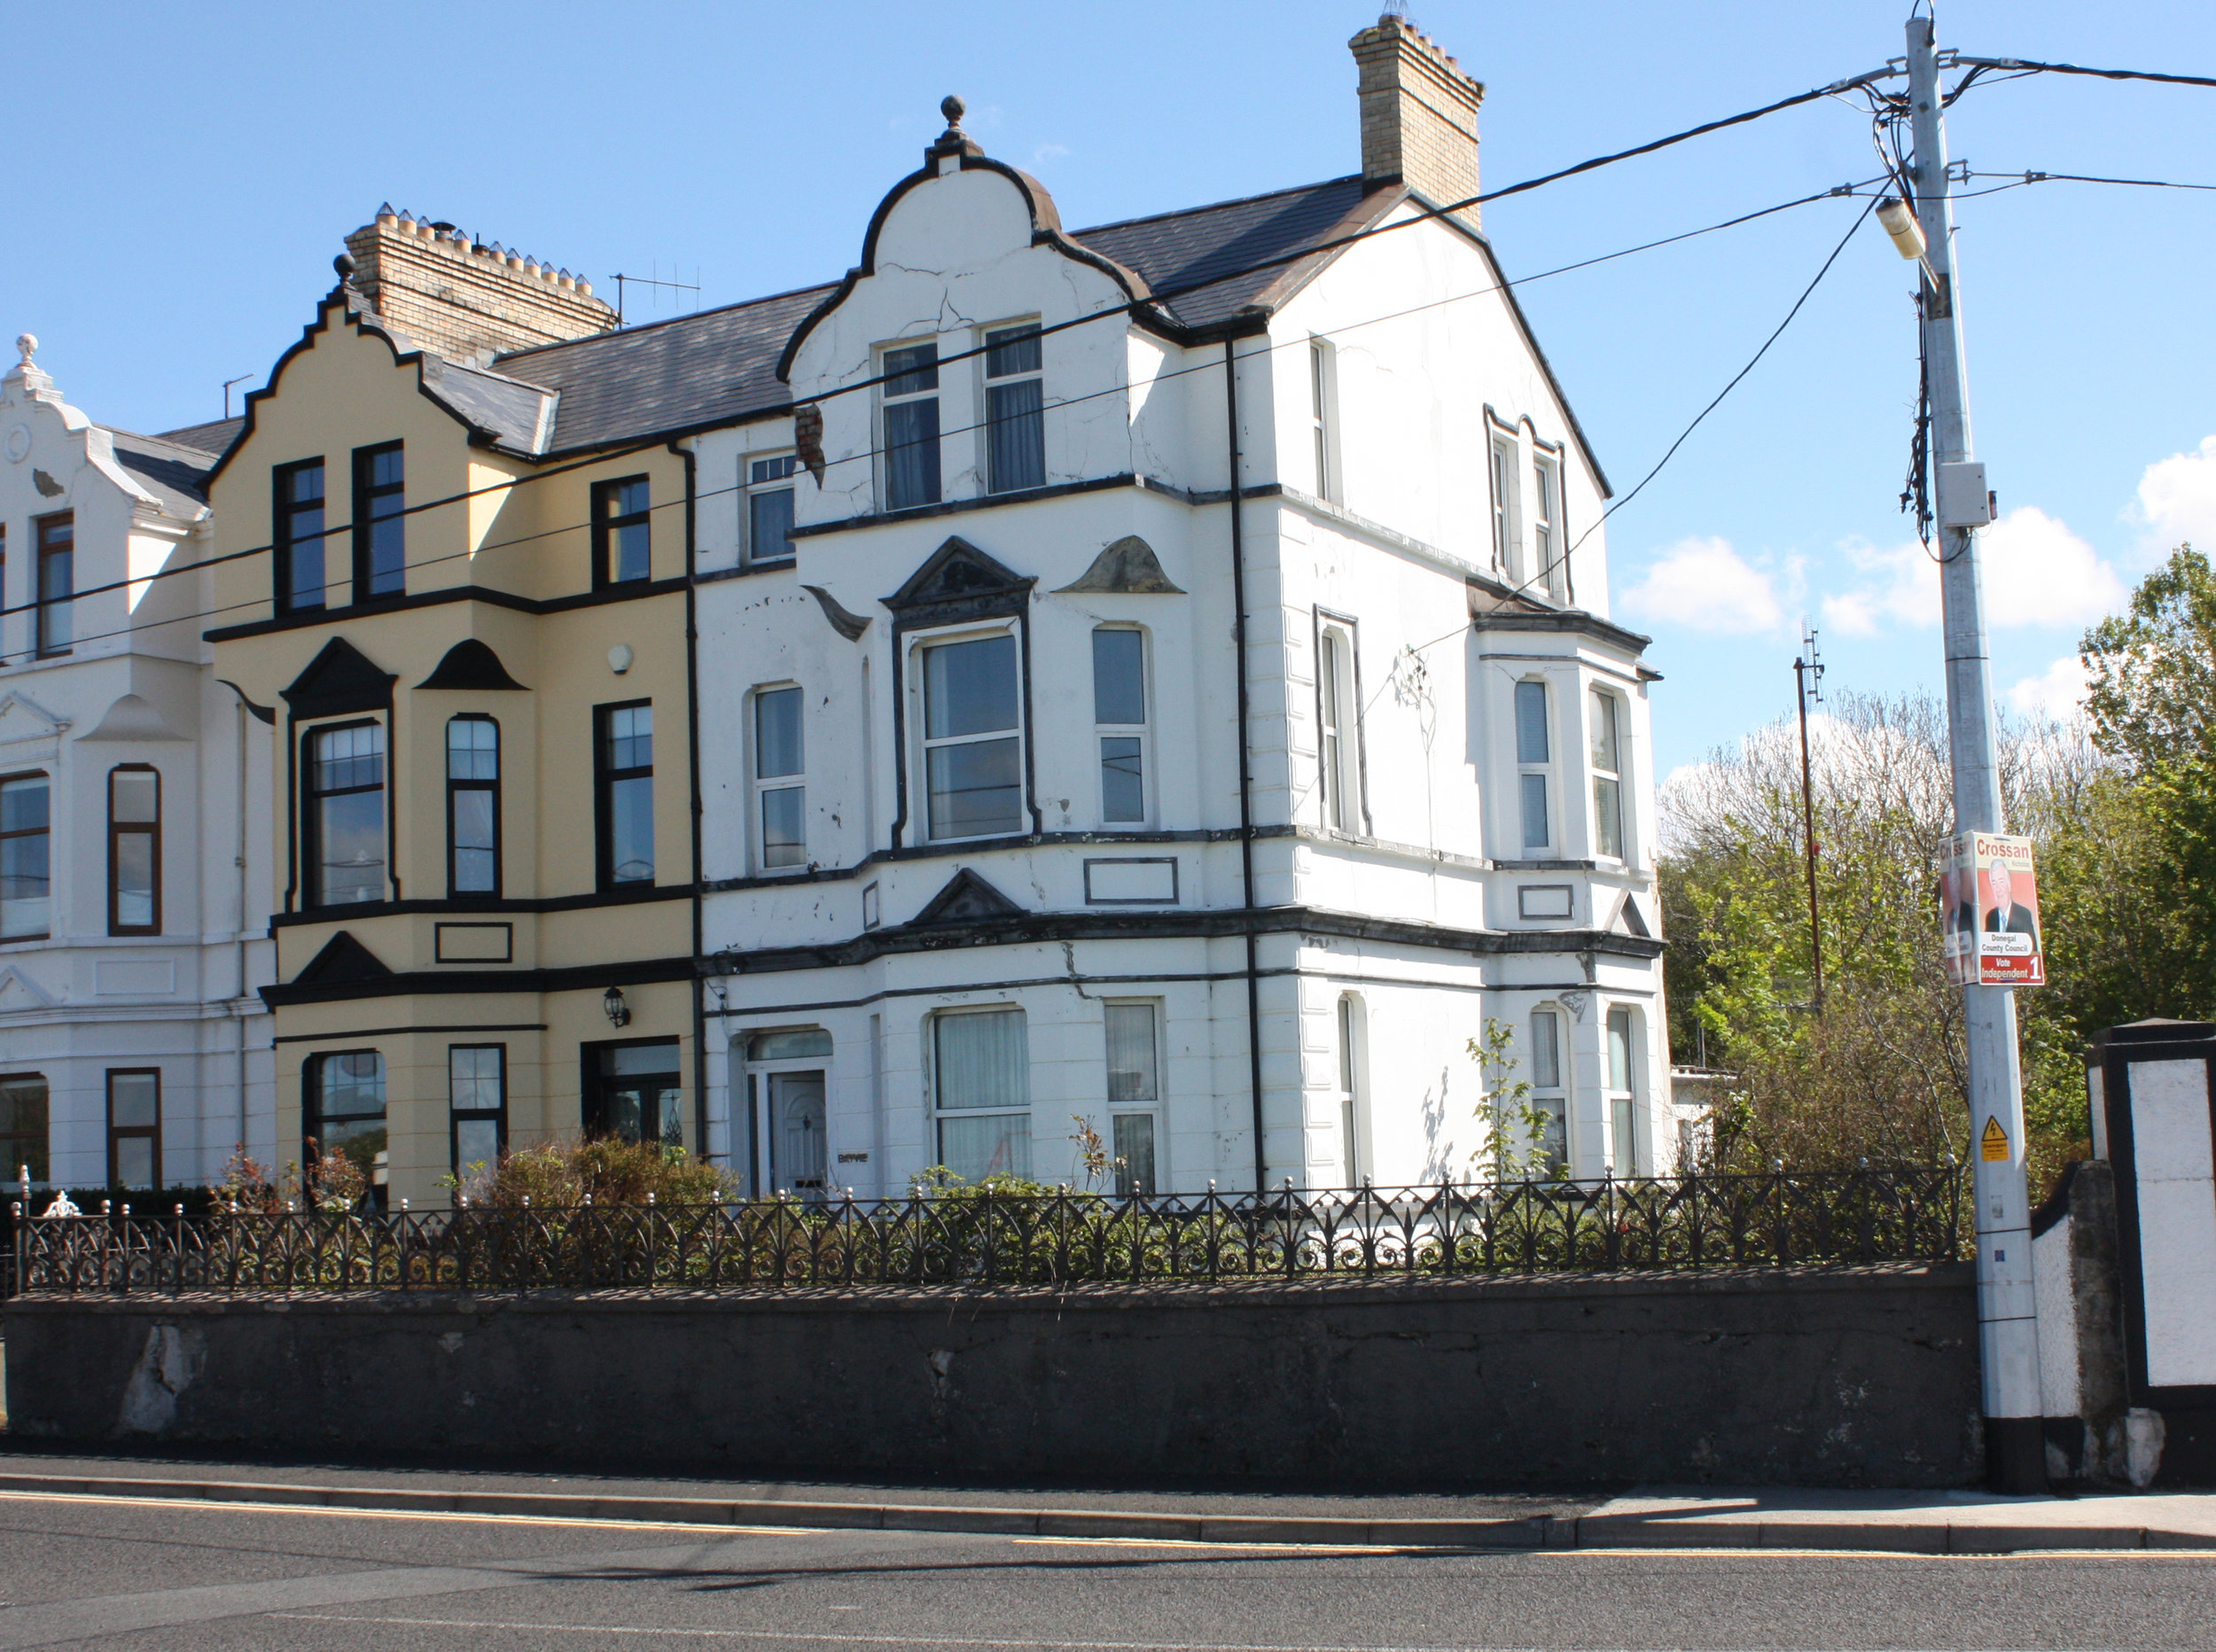 The Harbour Inn, Buncrana, Ireland - uselesspenguin.co.uk